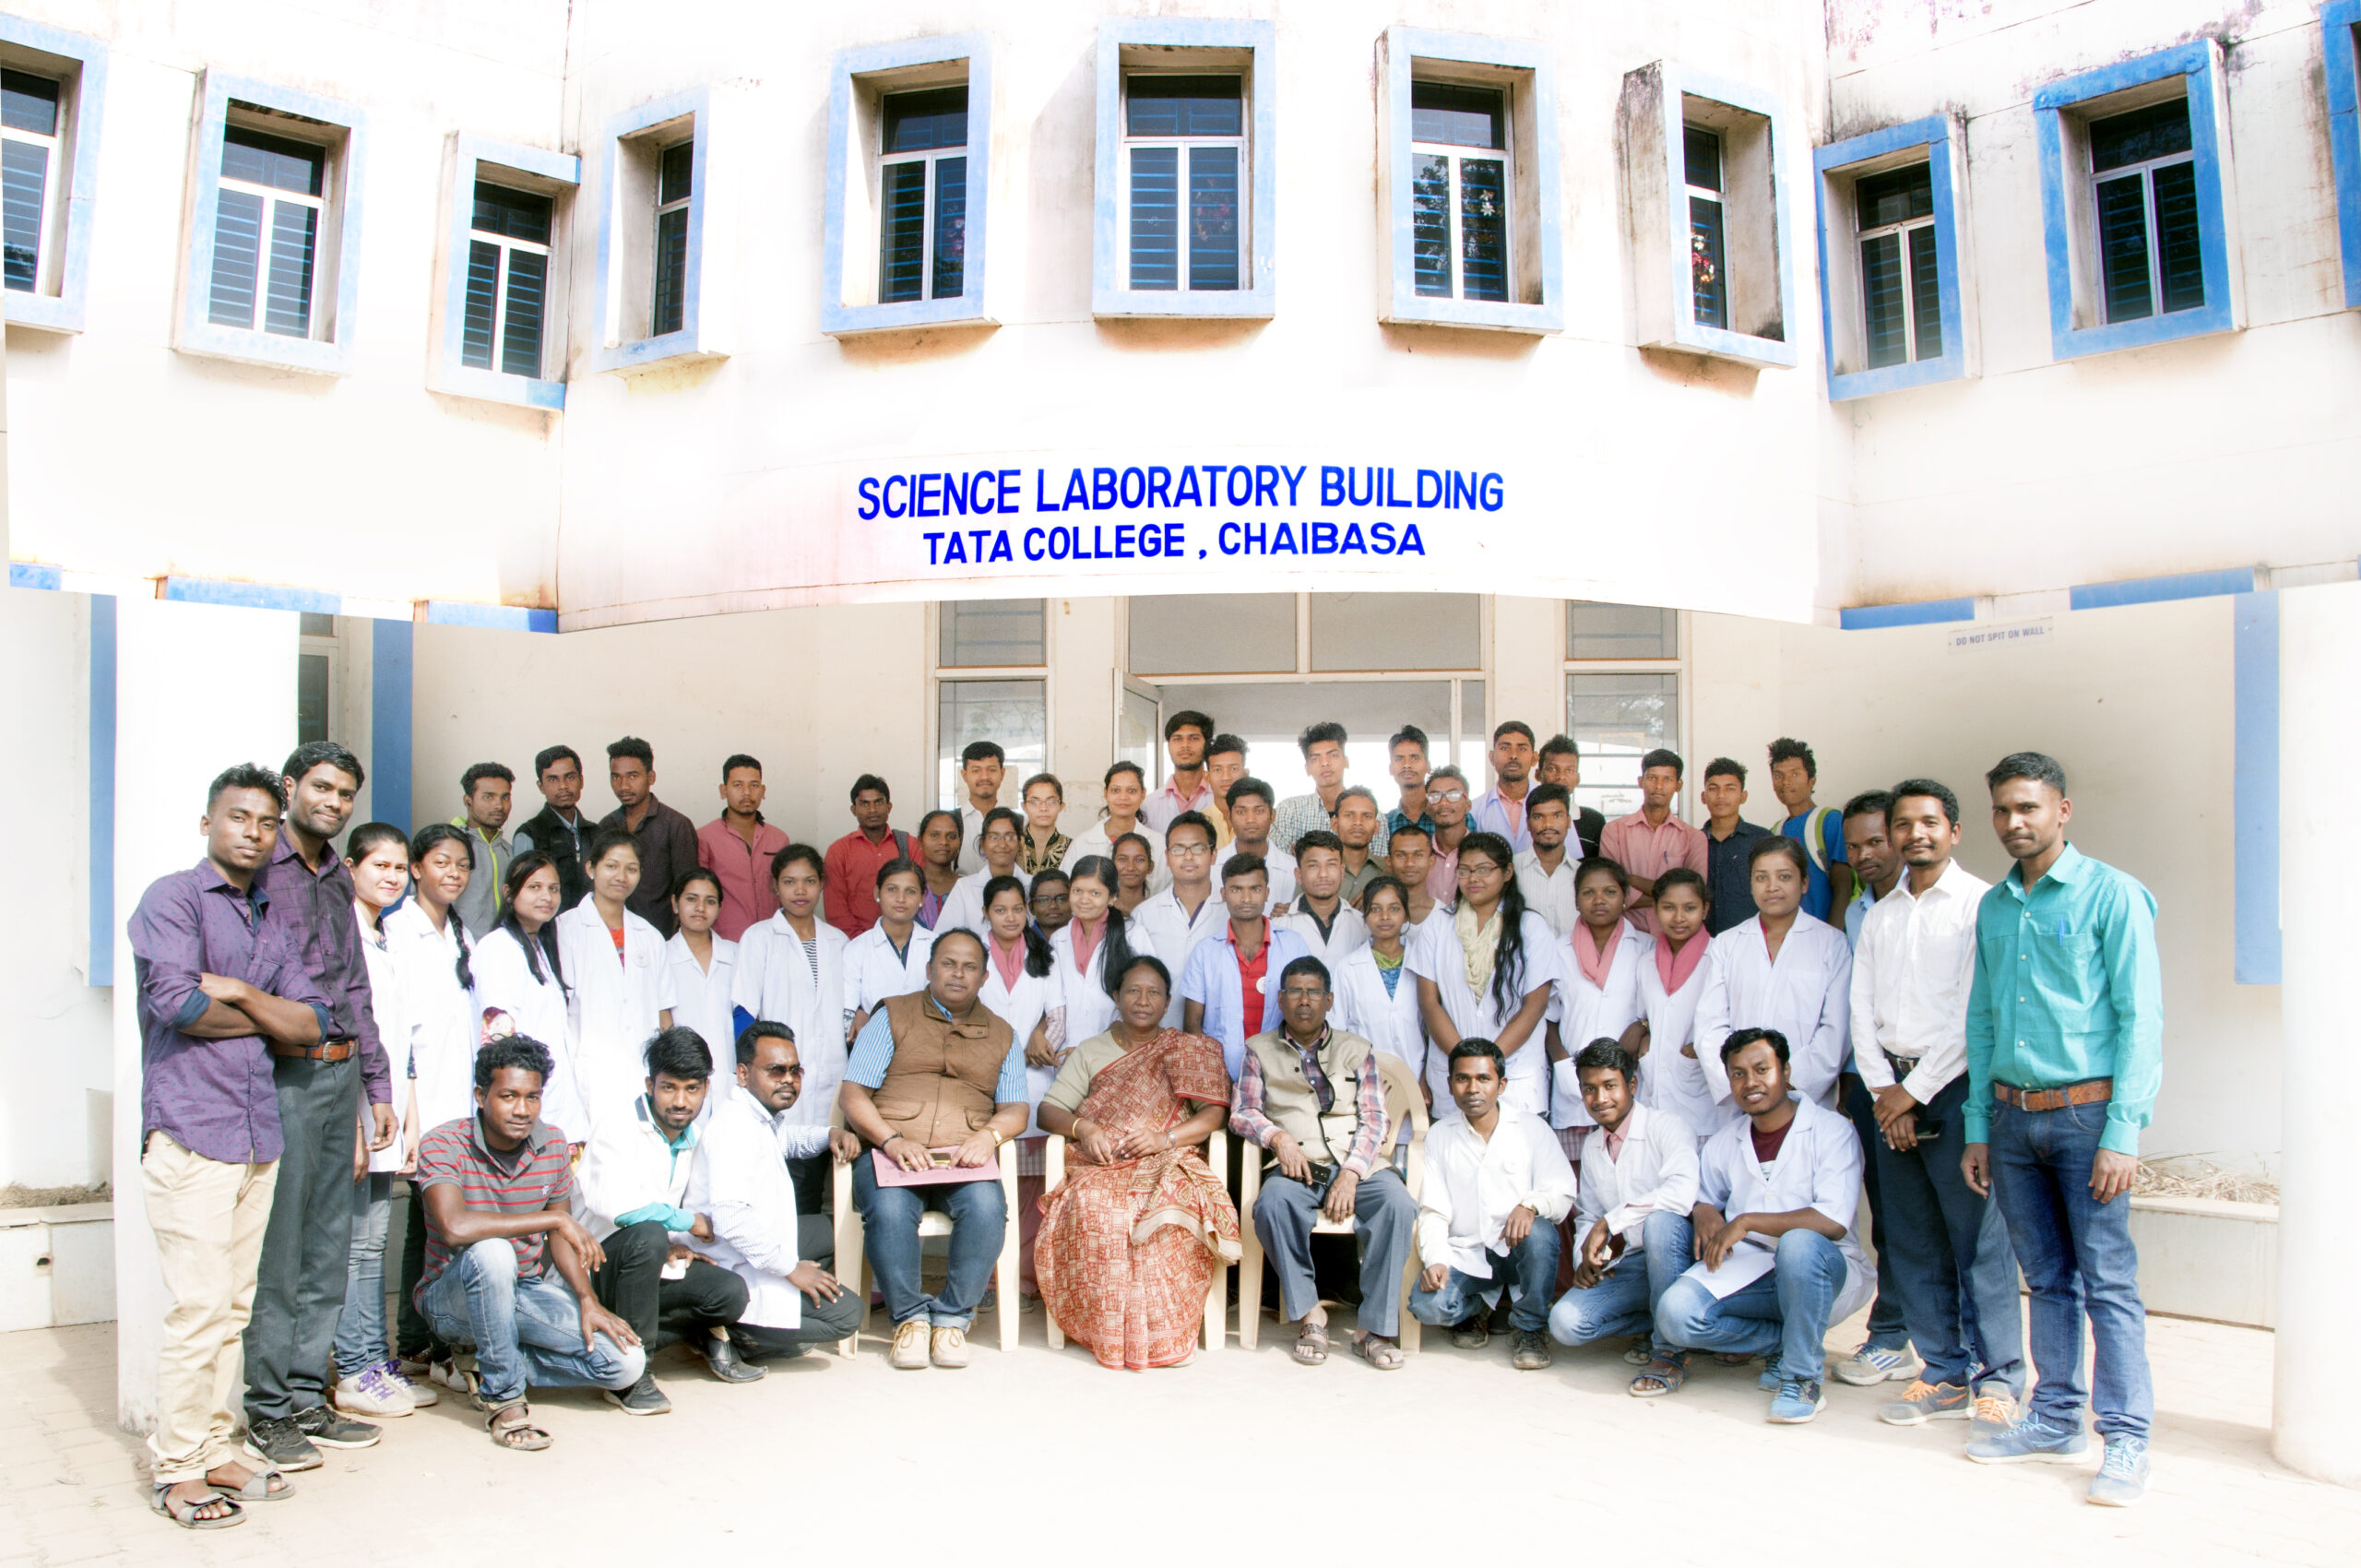 Tata College Science Faculty